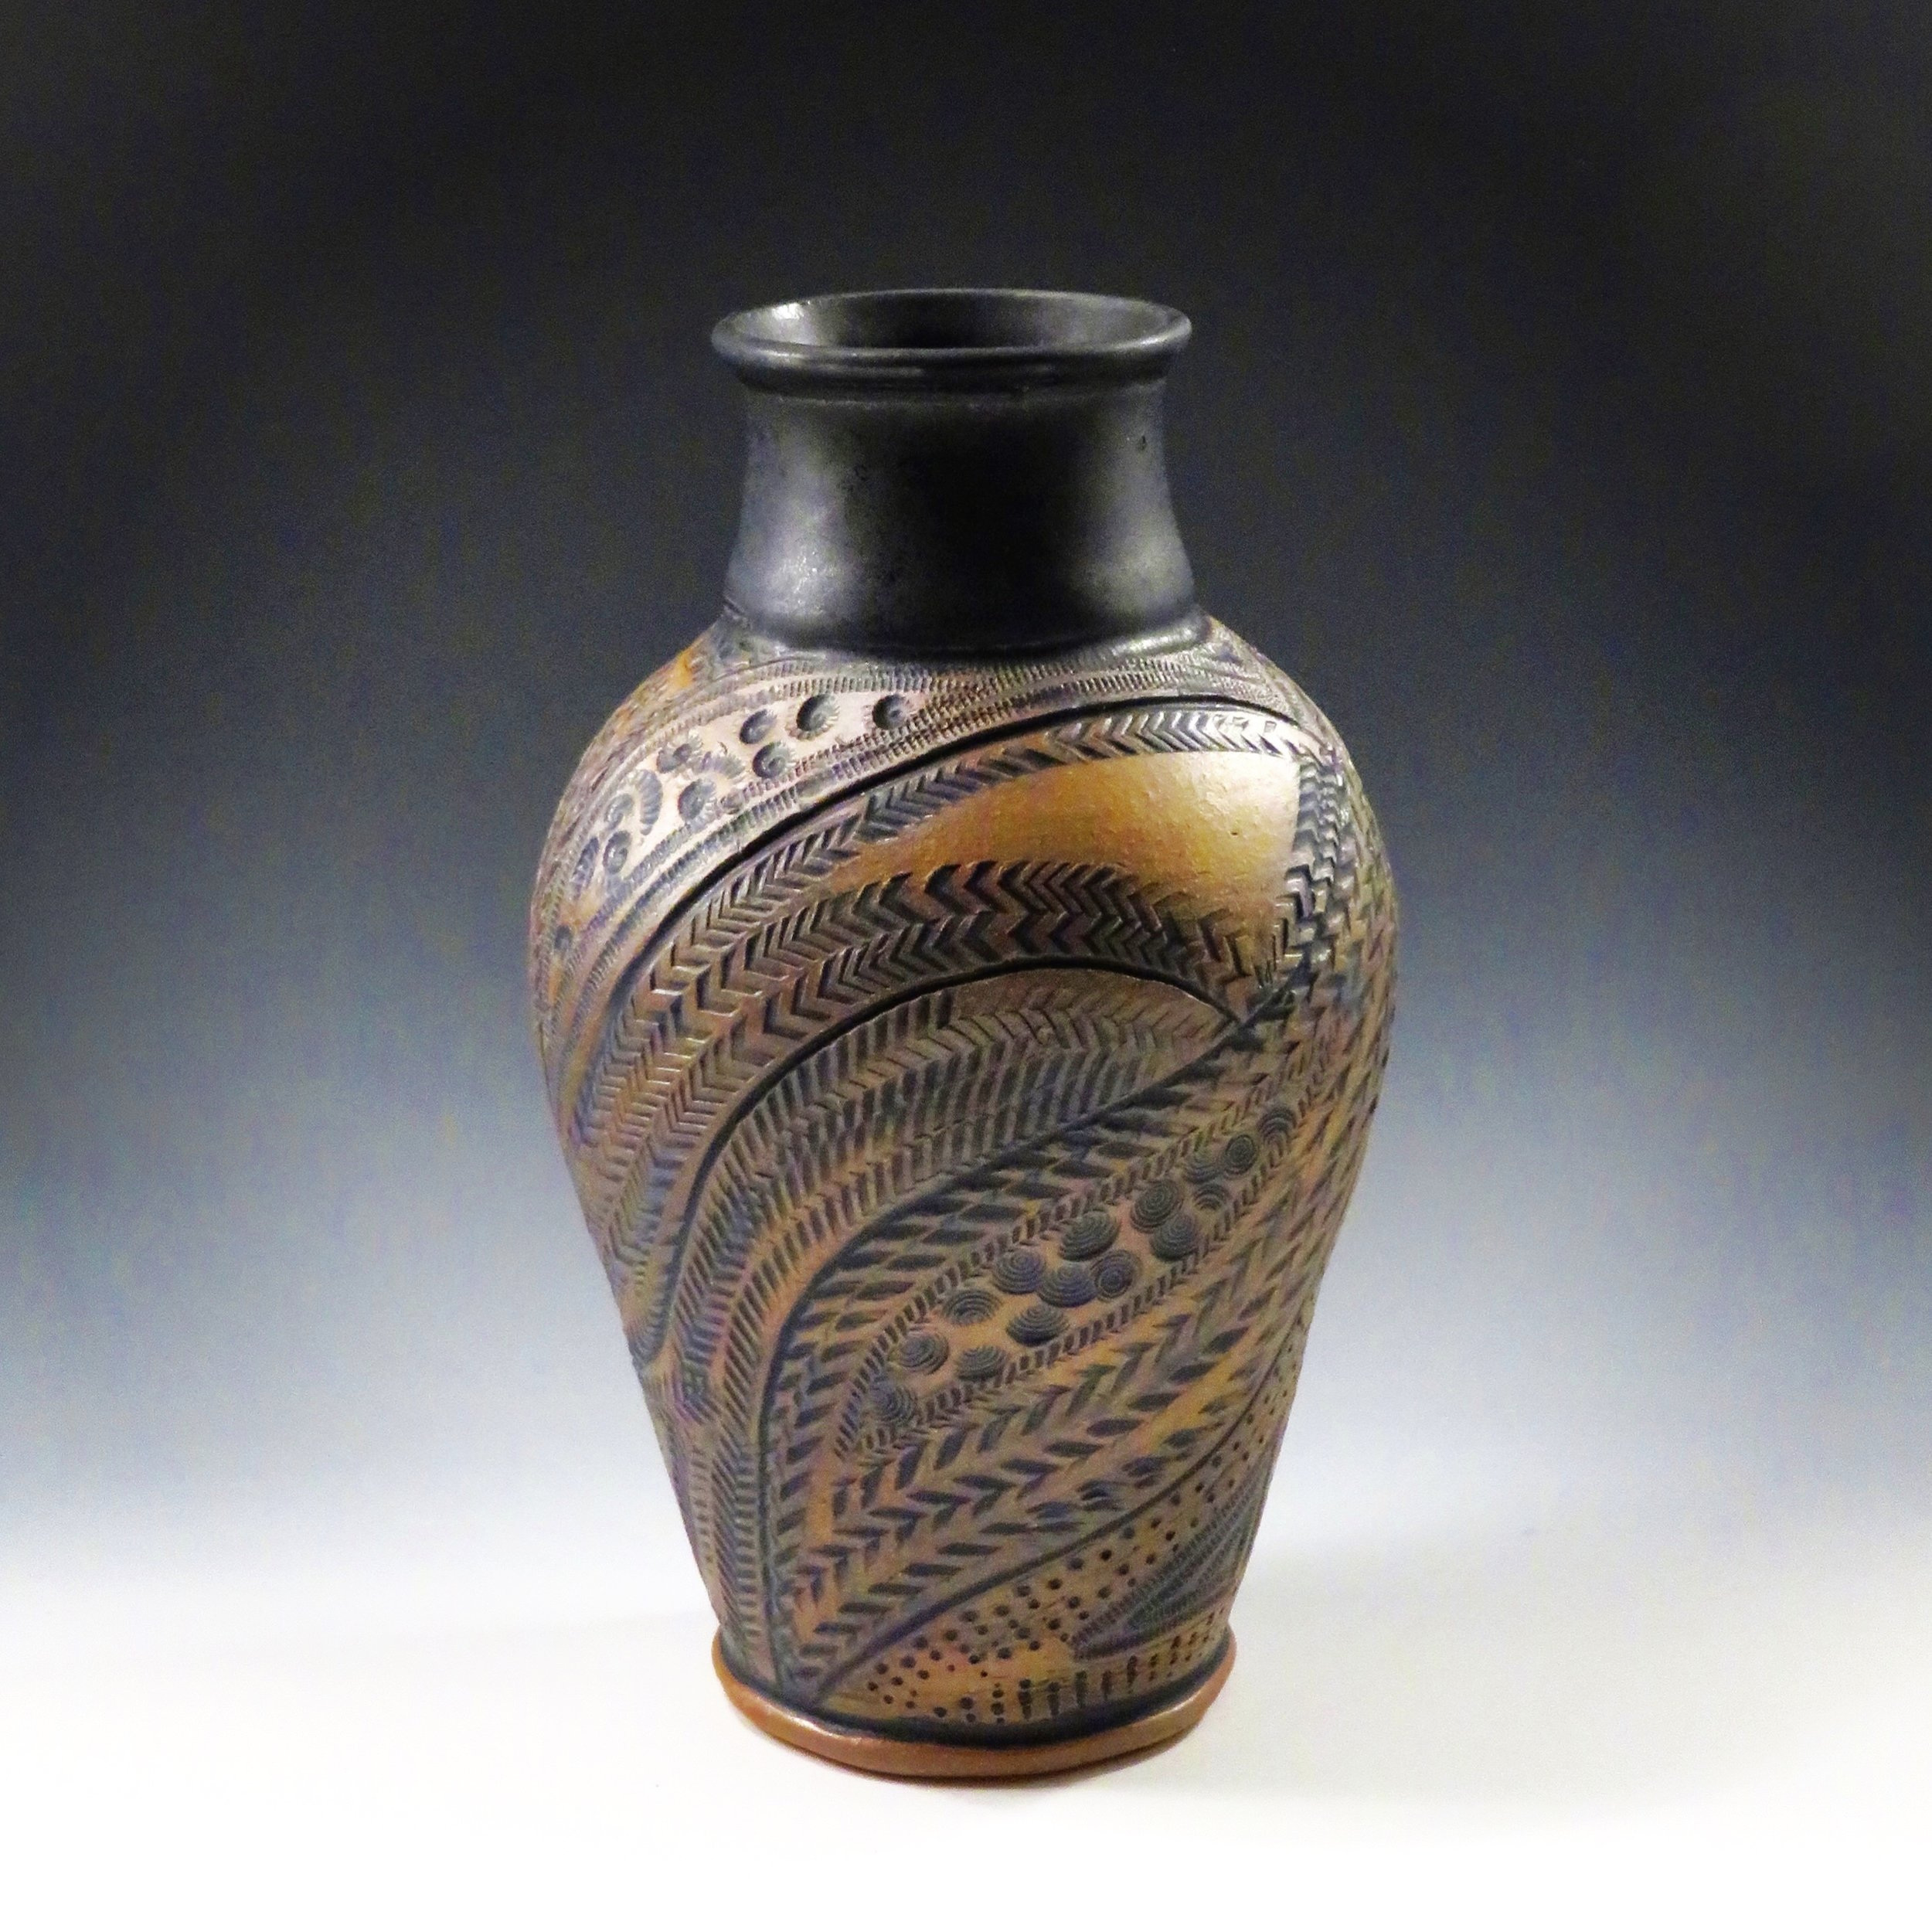 Brown/ black vase, carved and stamped